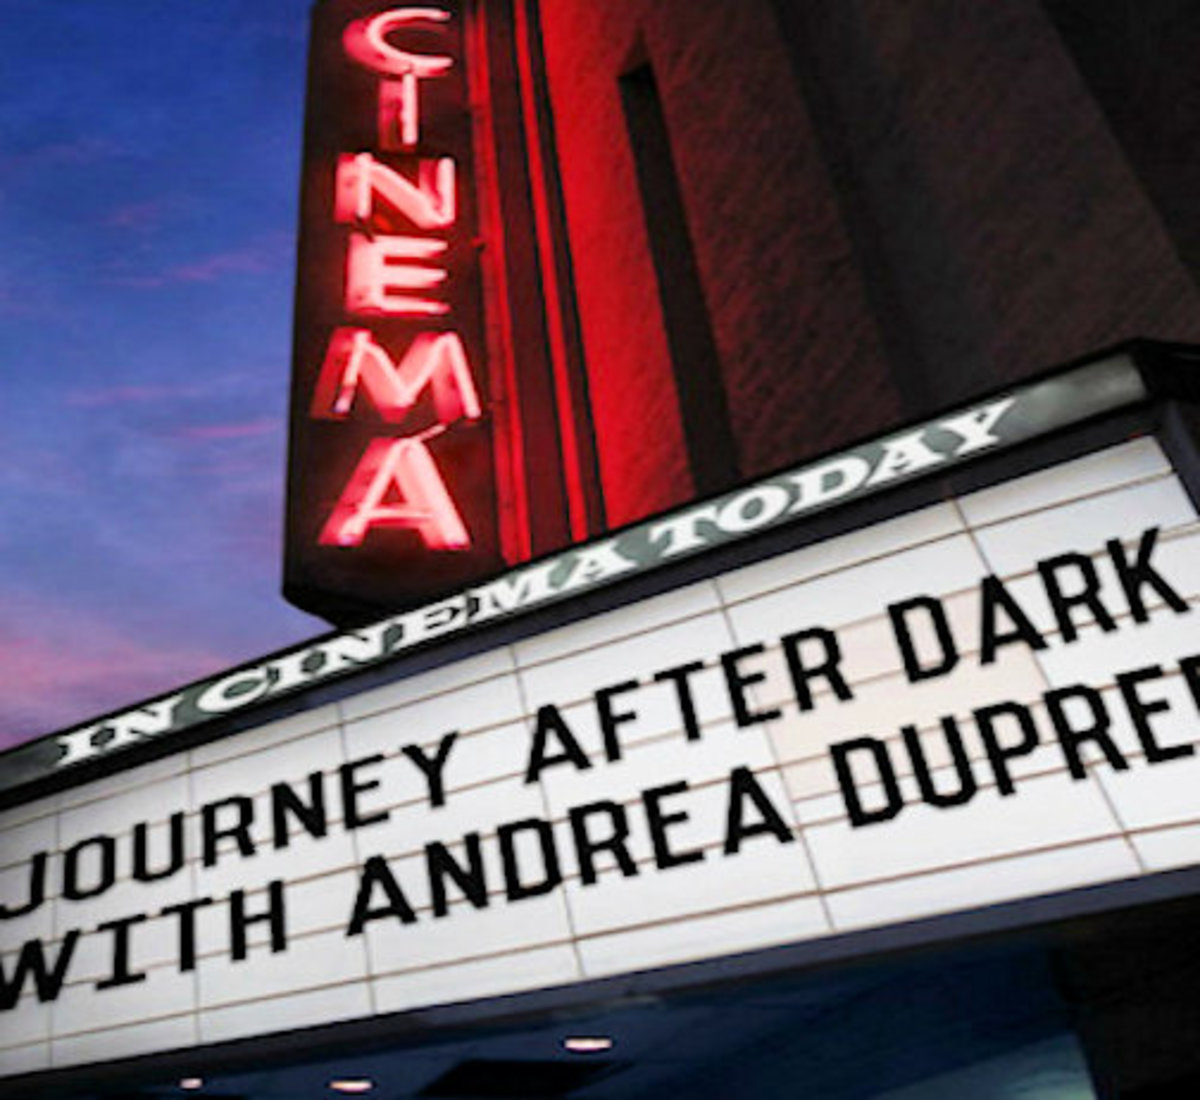 The story was made into a successful movie starring Andrea Dupree Latimoore.